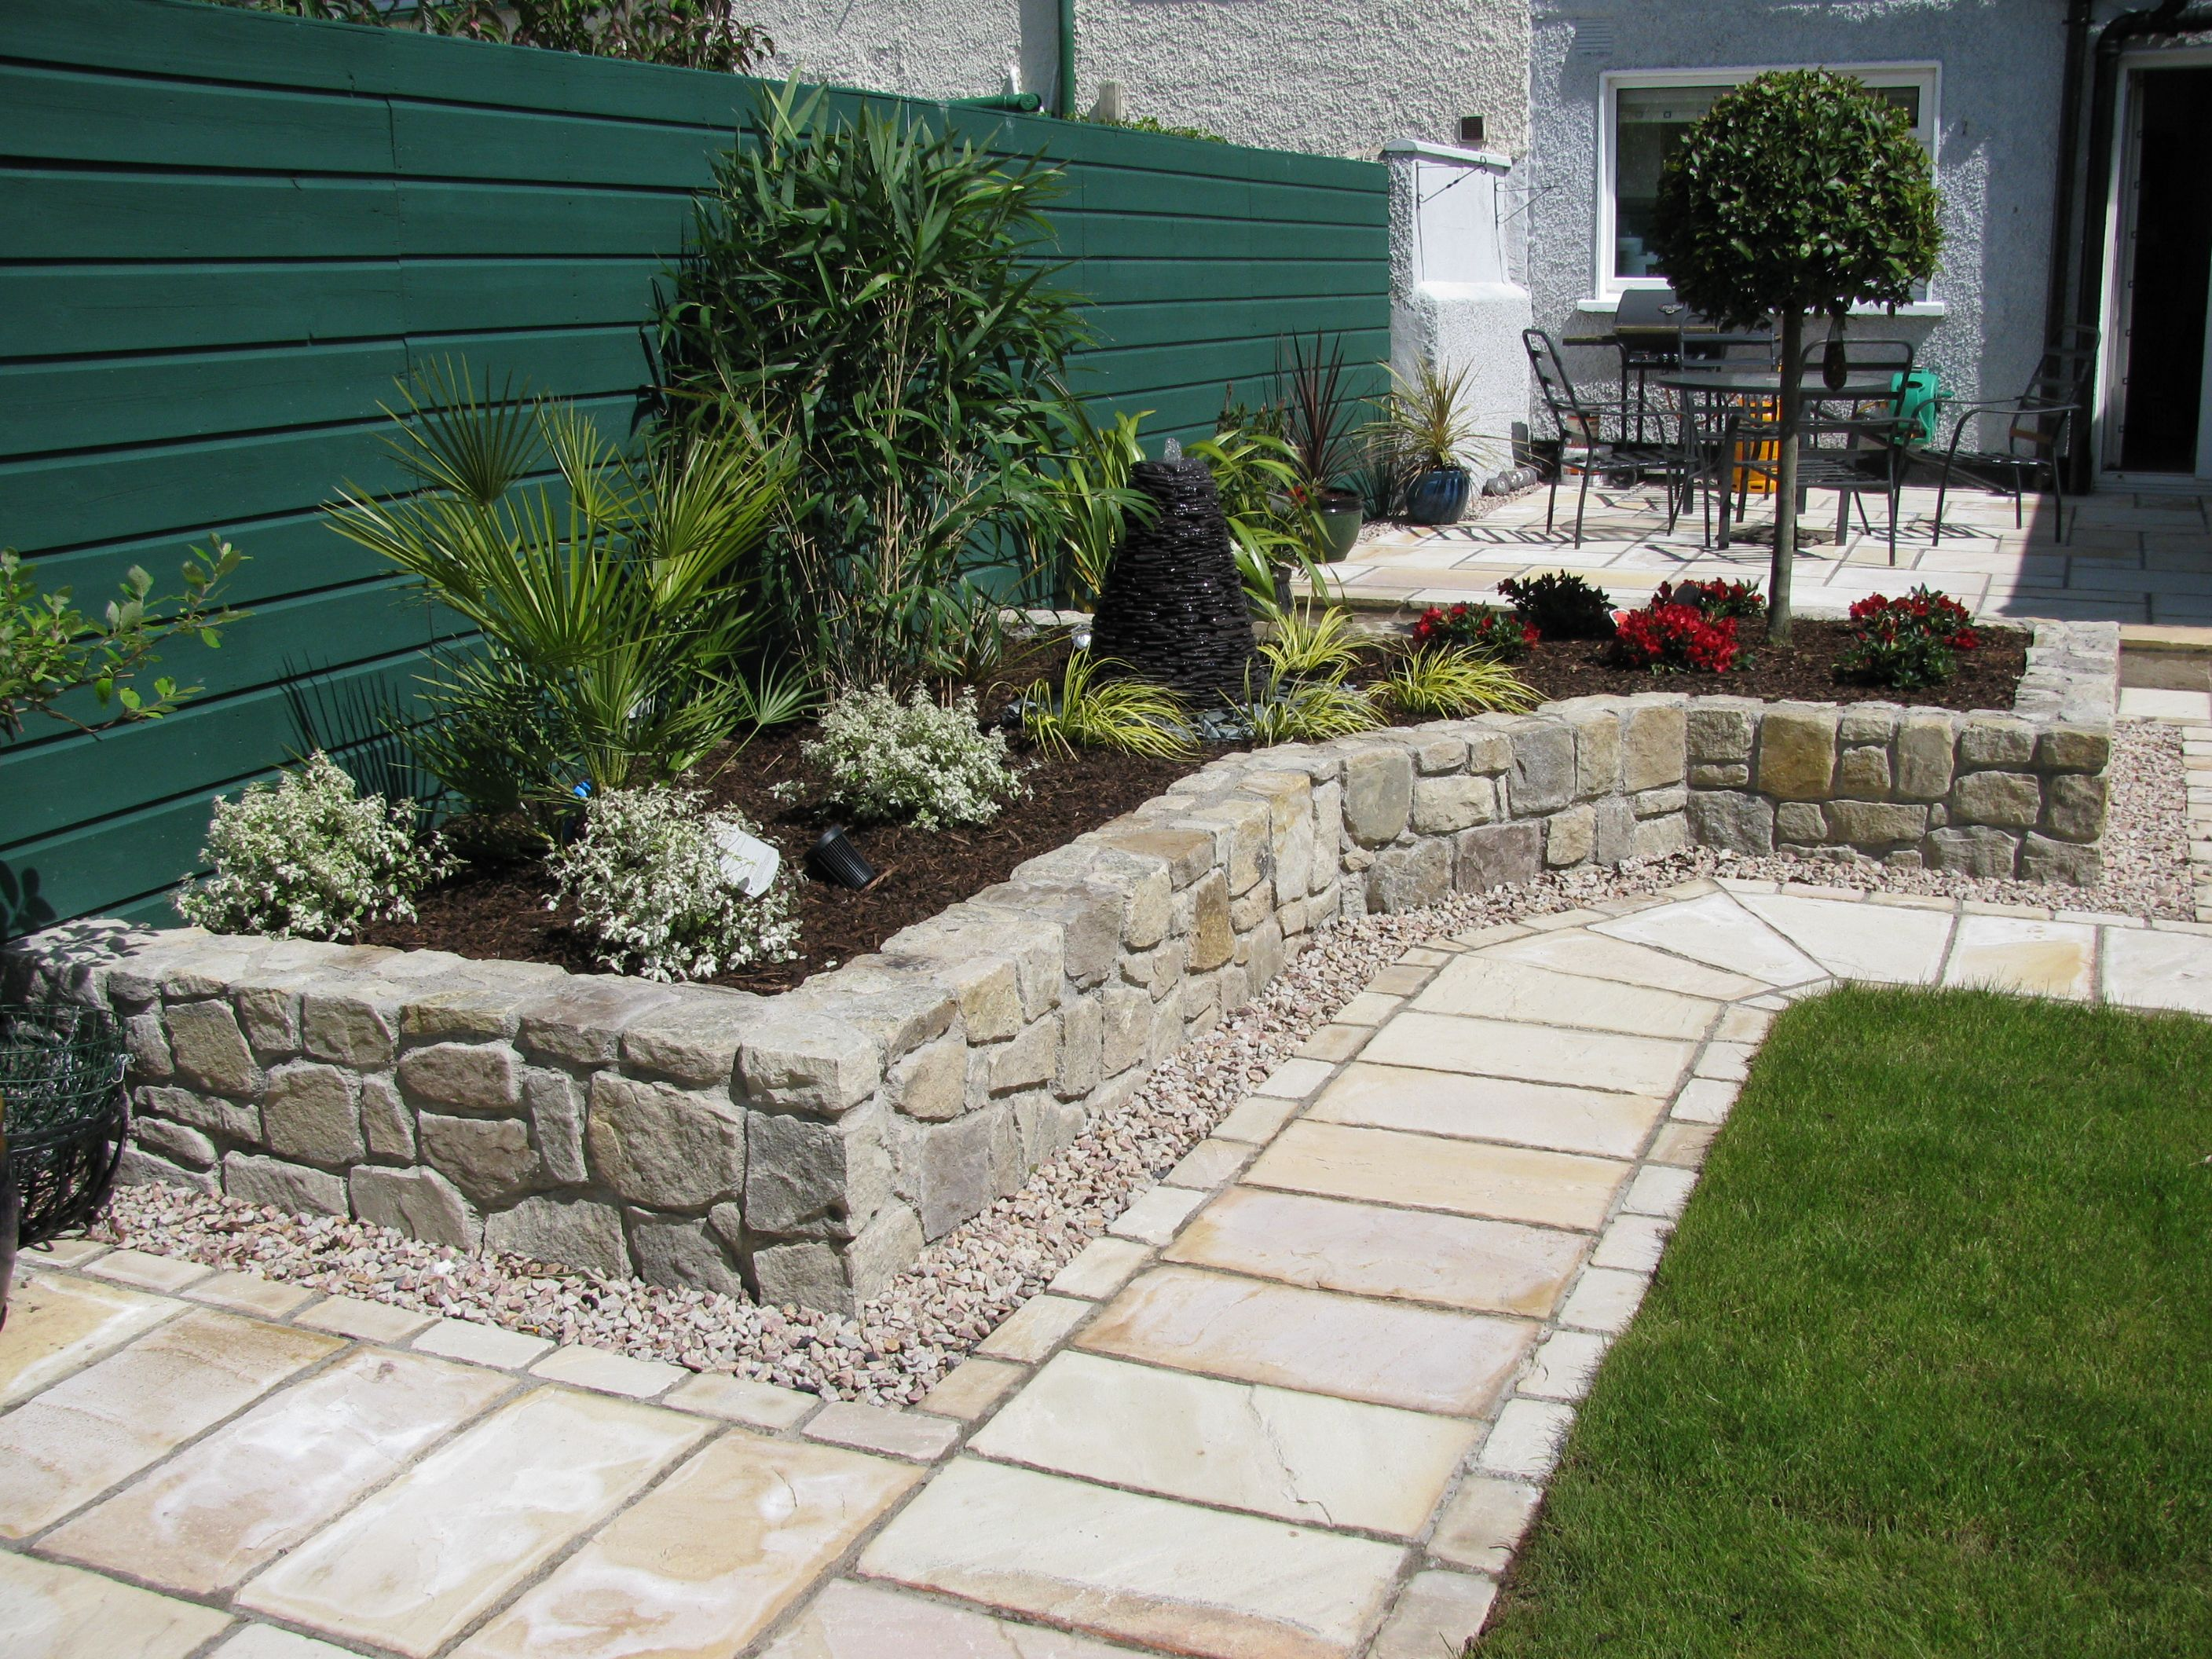 Pictures of landscaping small yards landscaping design for Rock landscaping ideas backyard